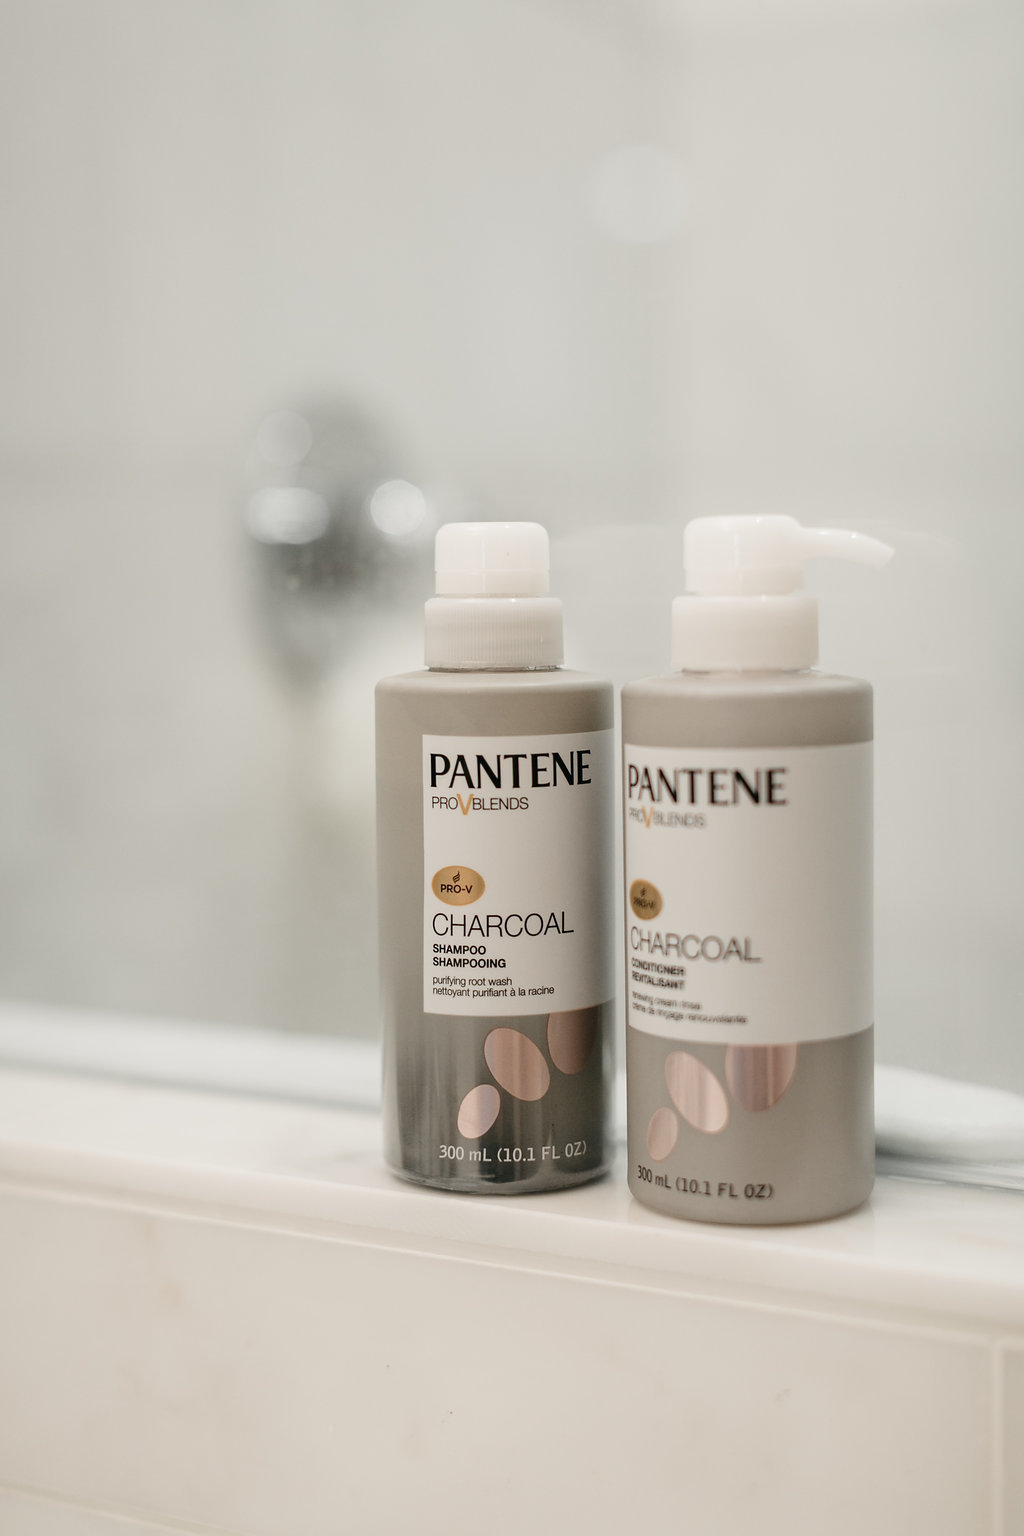 Pantene Charcoal Collection Shampoo and Conditioner - One Small Blonde